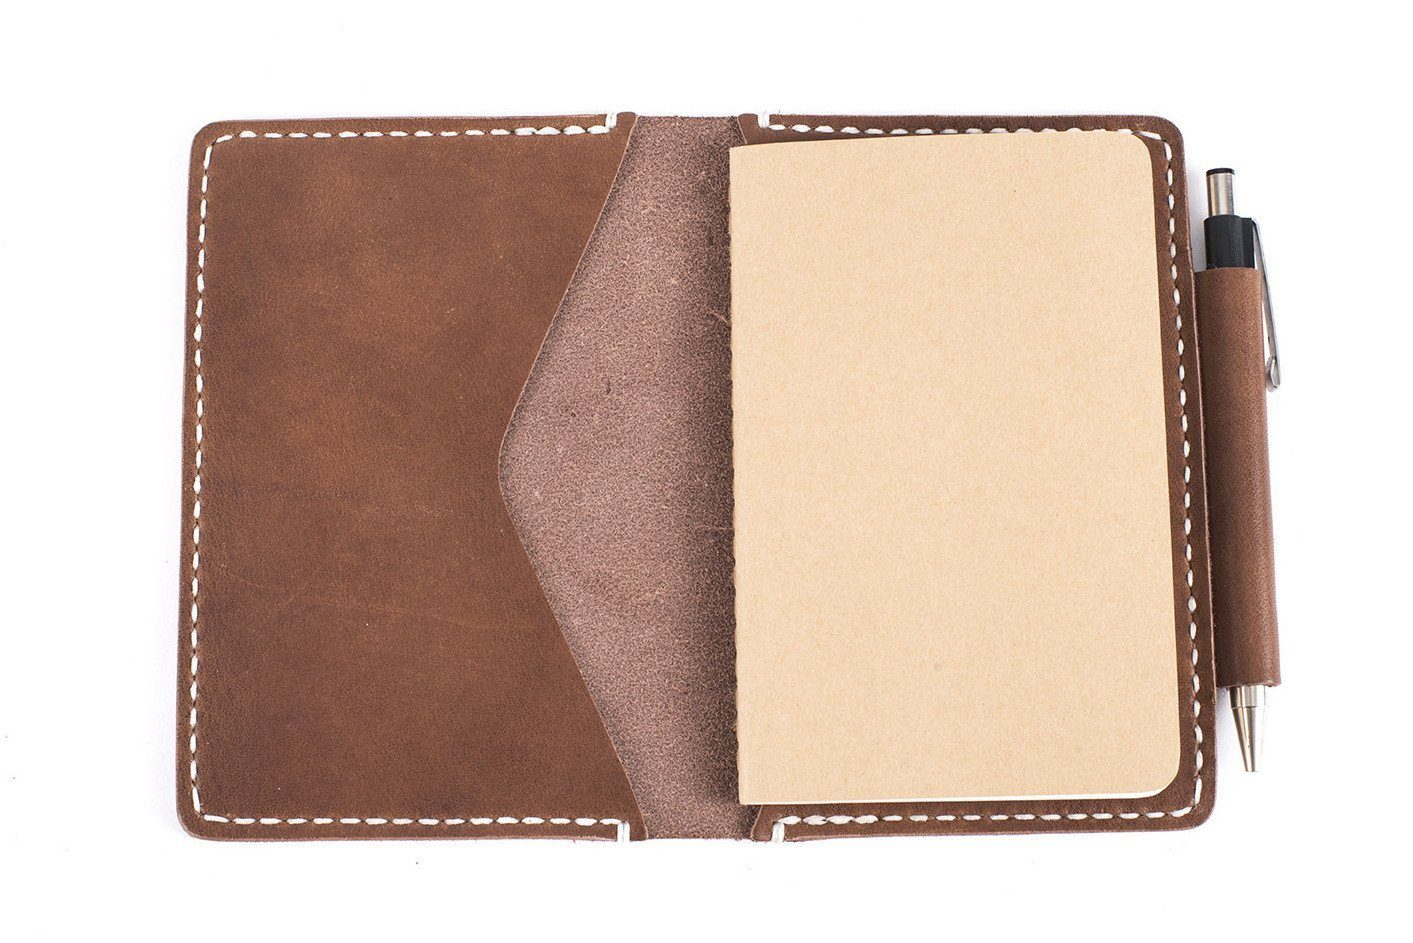 LEATHER NOTEBOOK COVER - 3.5 X 5.5 FIELDNOTES